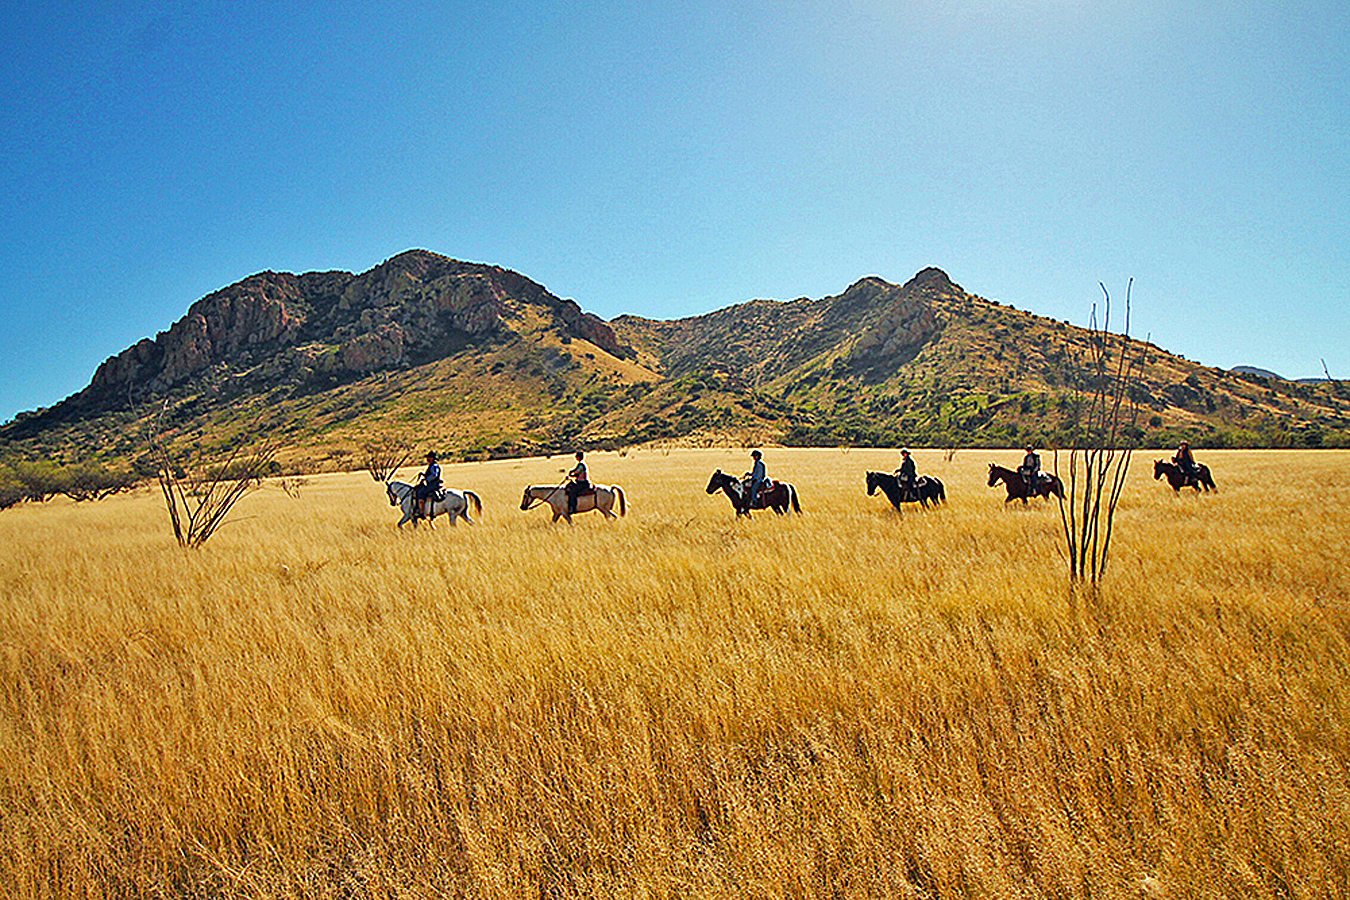 Want to plan a dude ranch vacation but don't know where or how to begin your research? A great place to start is the newly launched, easy-to-navigate website created by the Dude Ranchers Association.